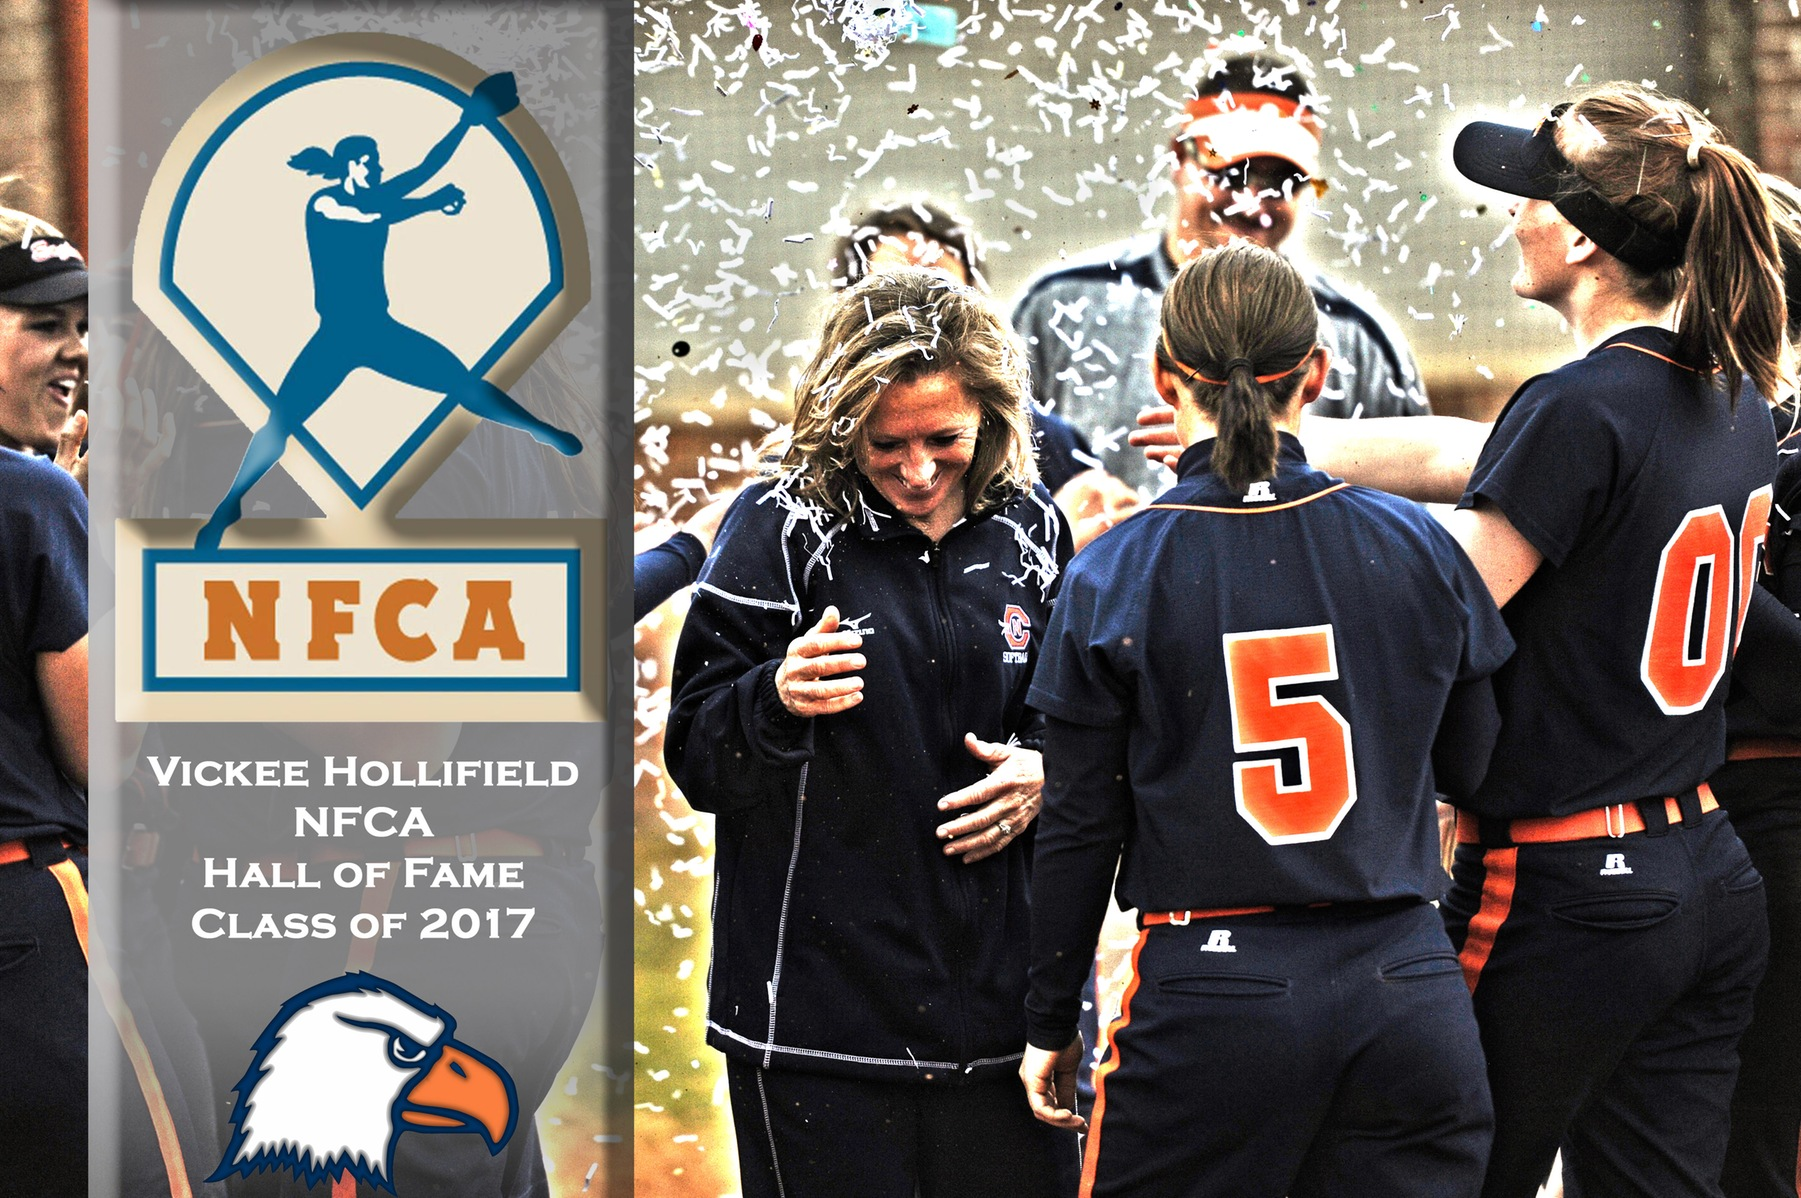 Kazee-Hollifield heads into NFCA Hall of Fame Friday night